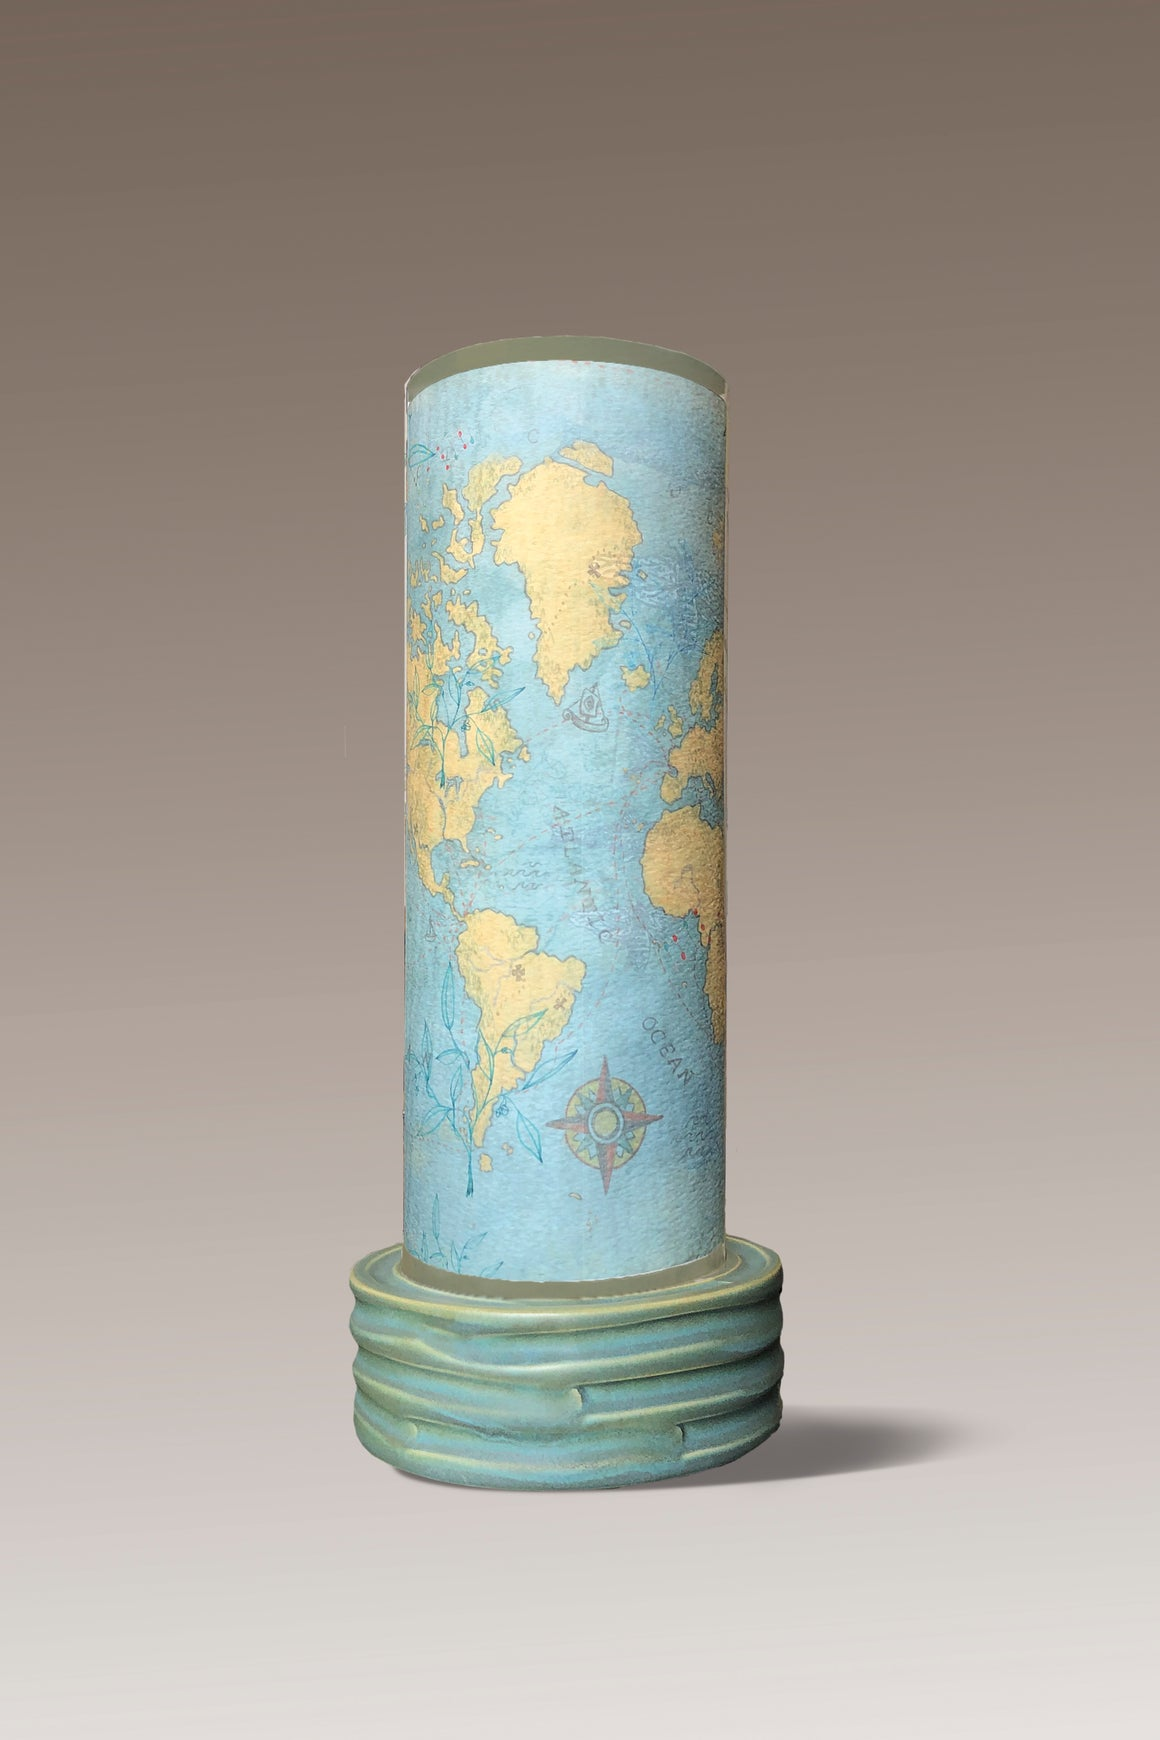 Ceramic Luminaire Accent Lamp with Map Shade